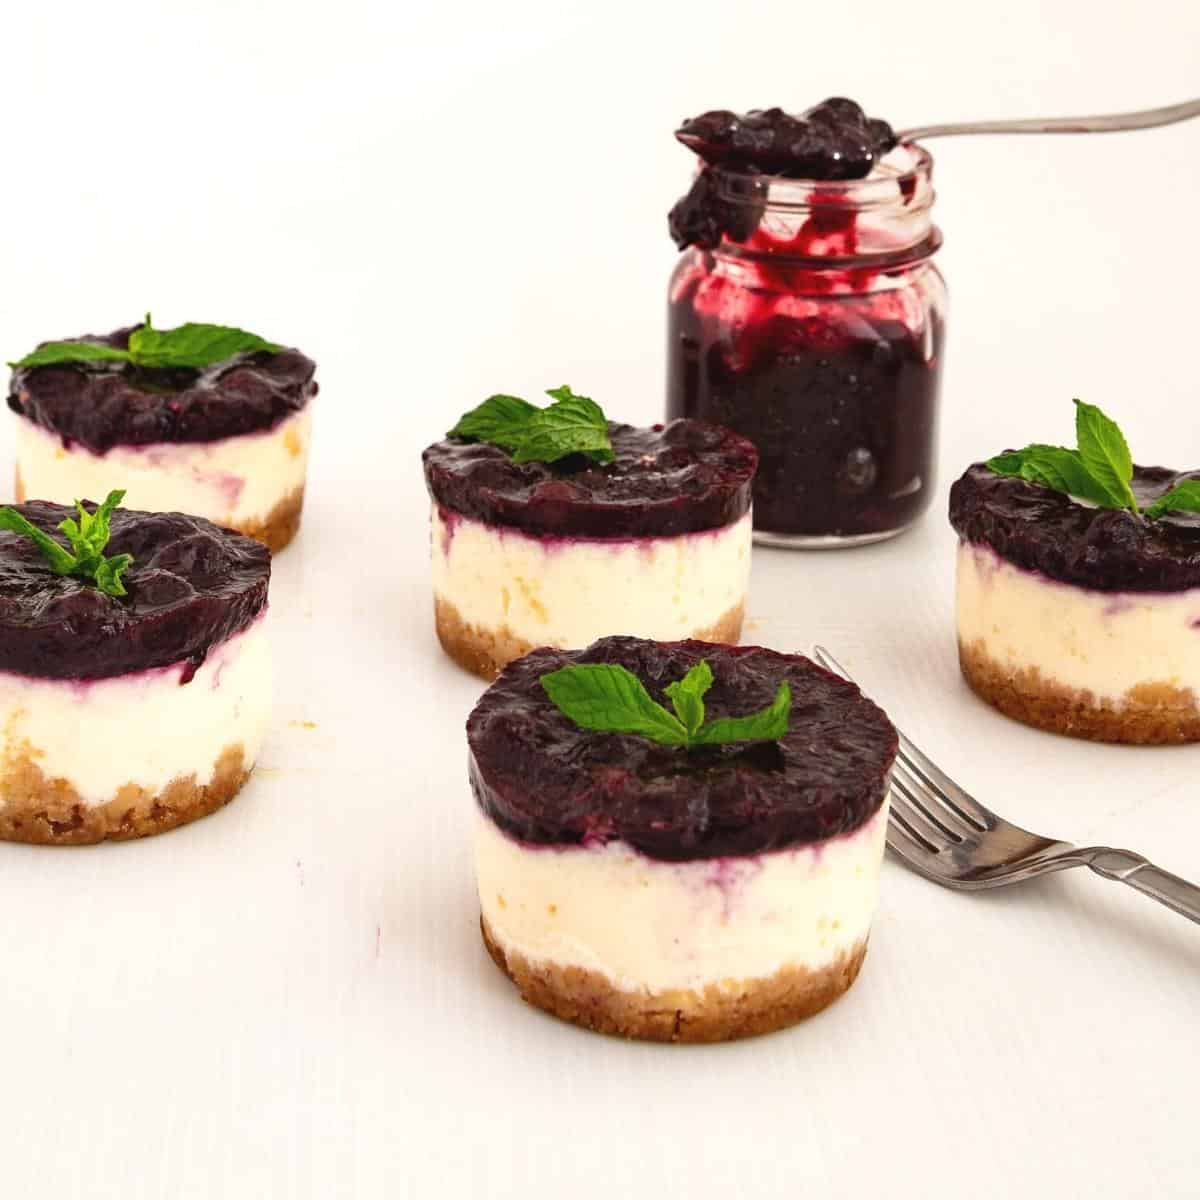 Mini cheesecakes topped with blueberry filling on the table.